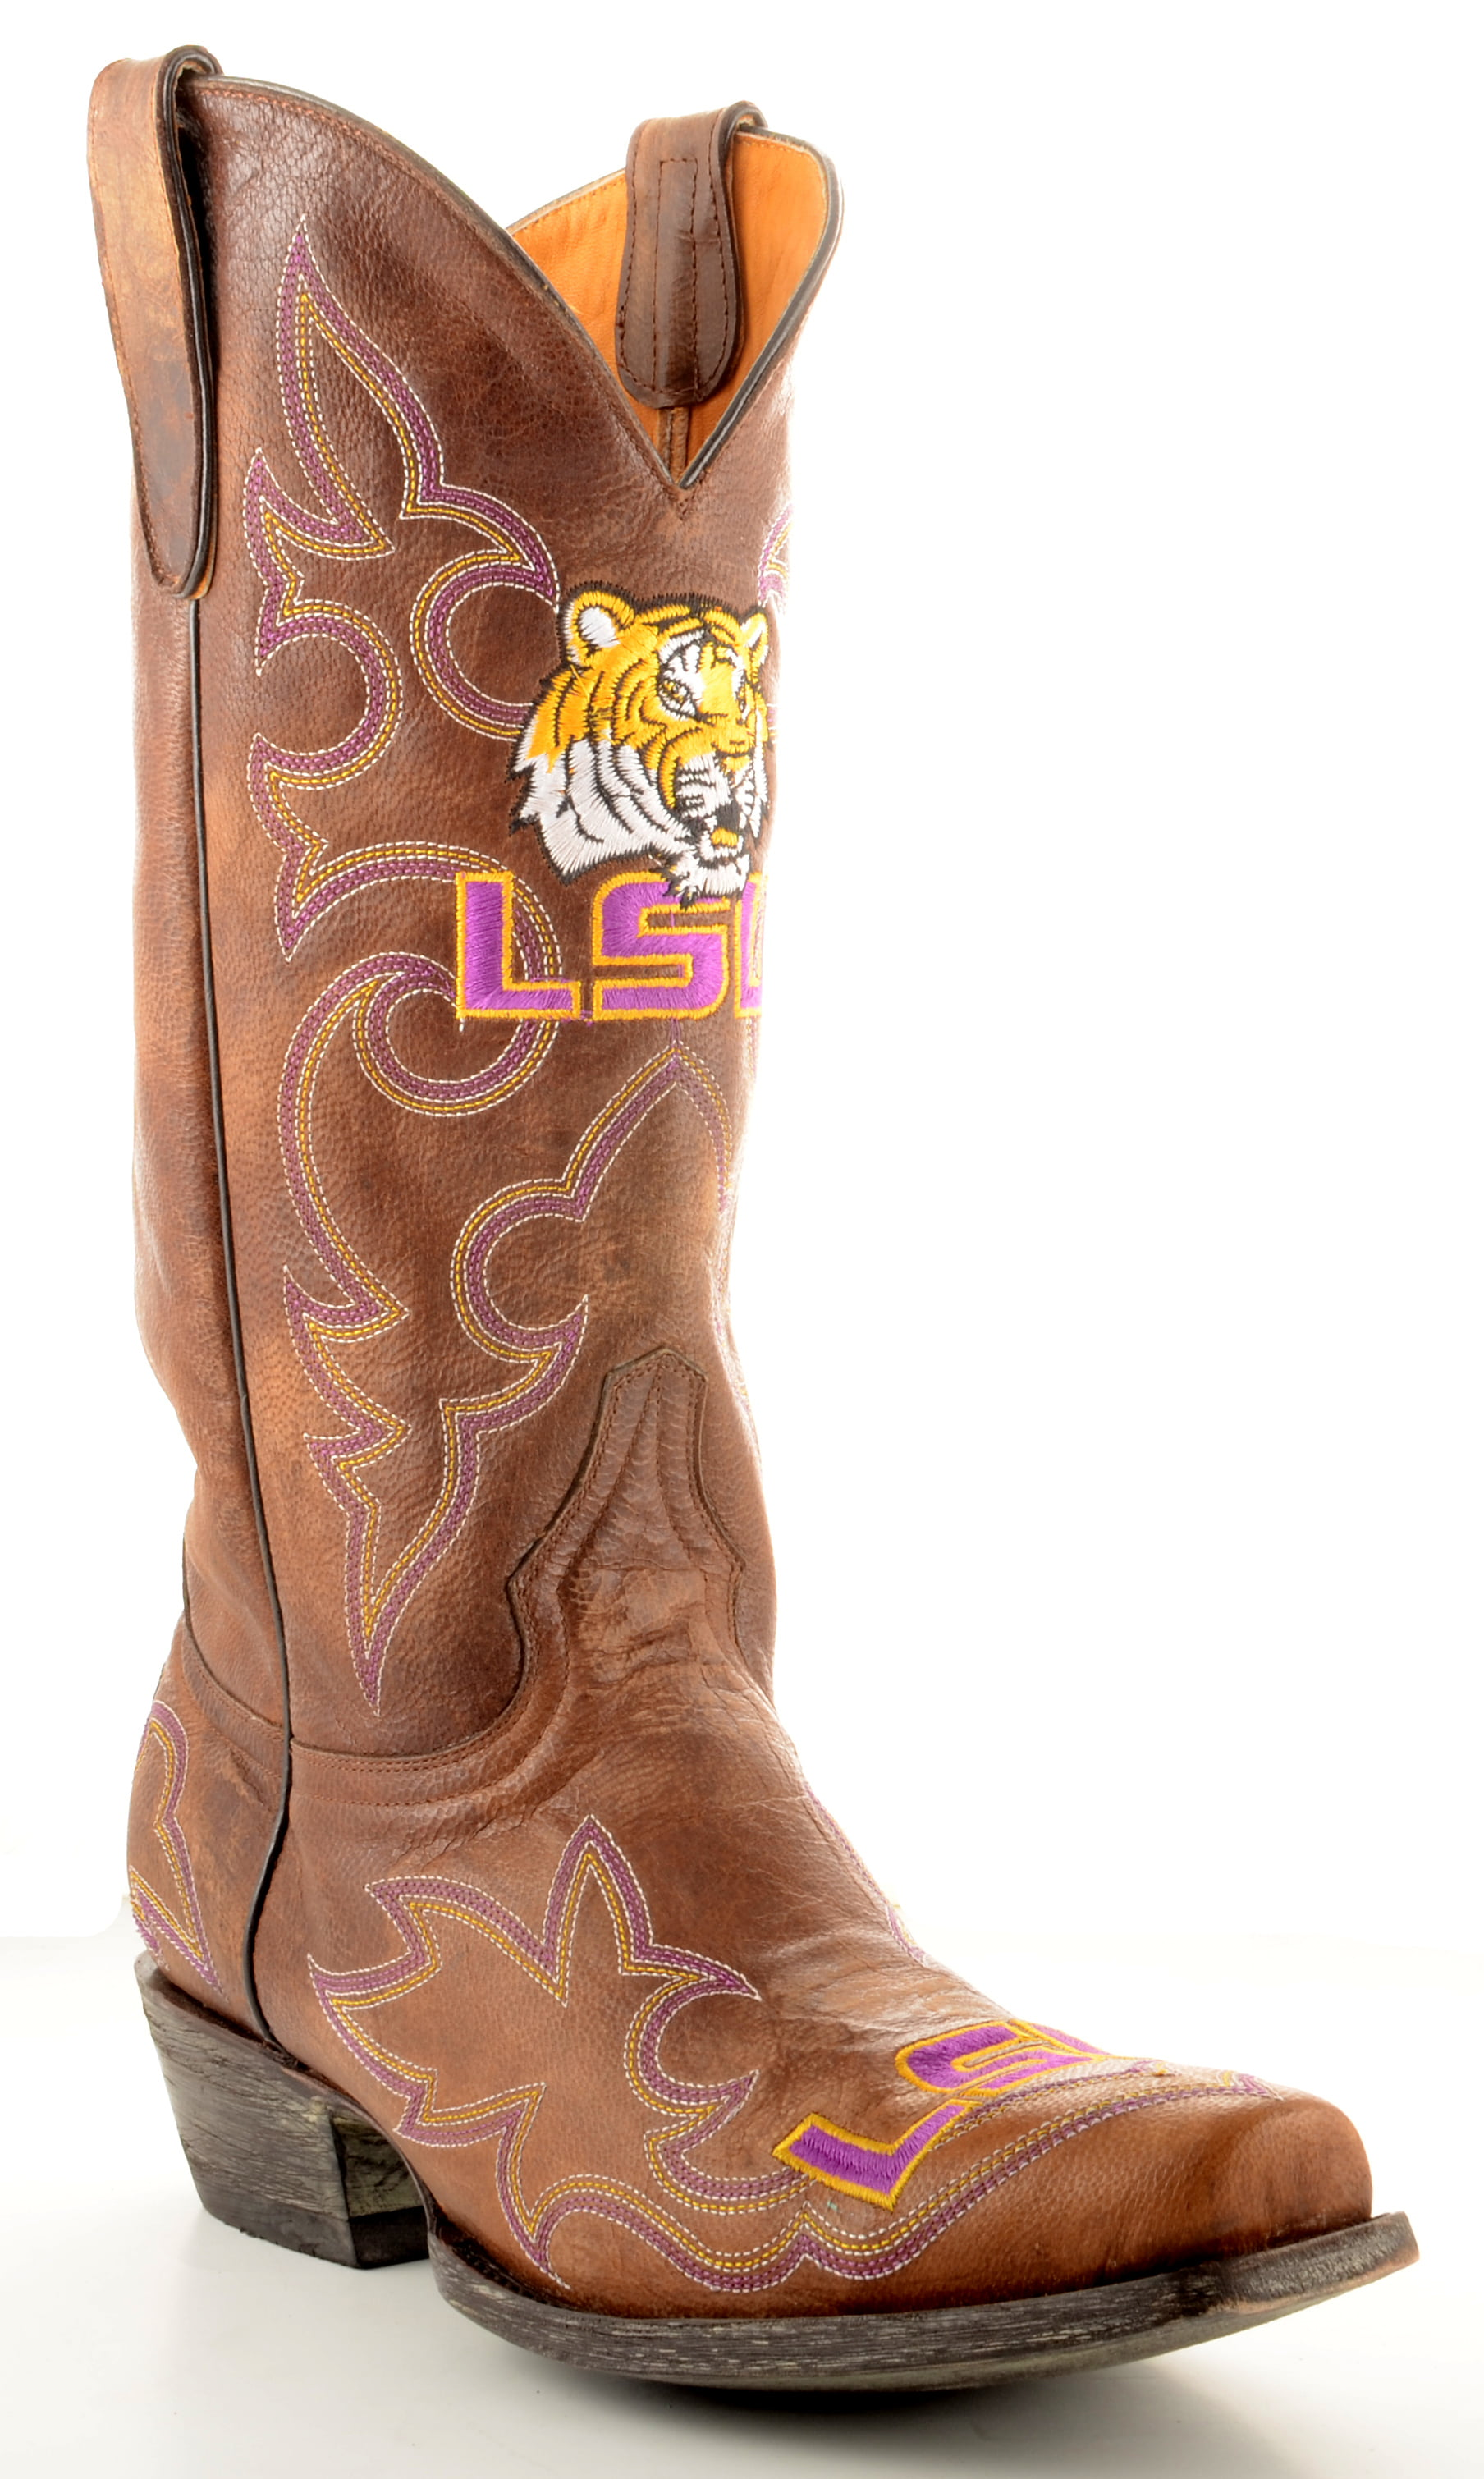 Gameday Boots Mens Leather Louisiana State Cowboy Boots by GameDay Boots